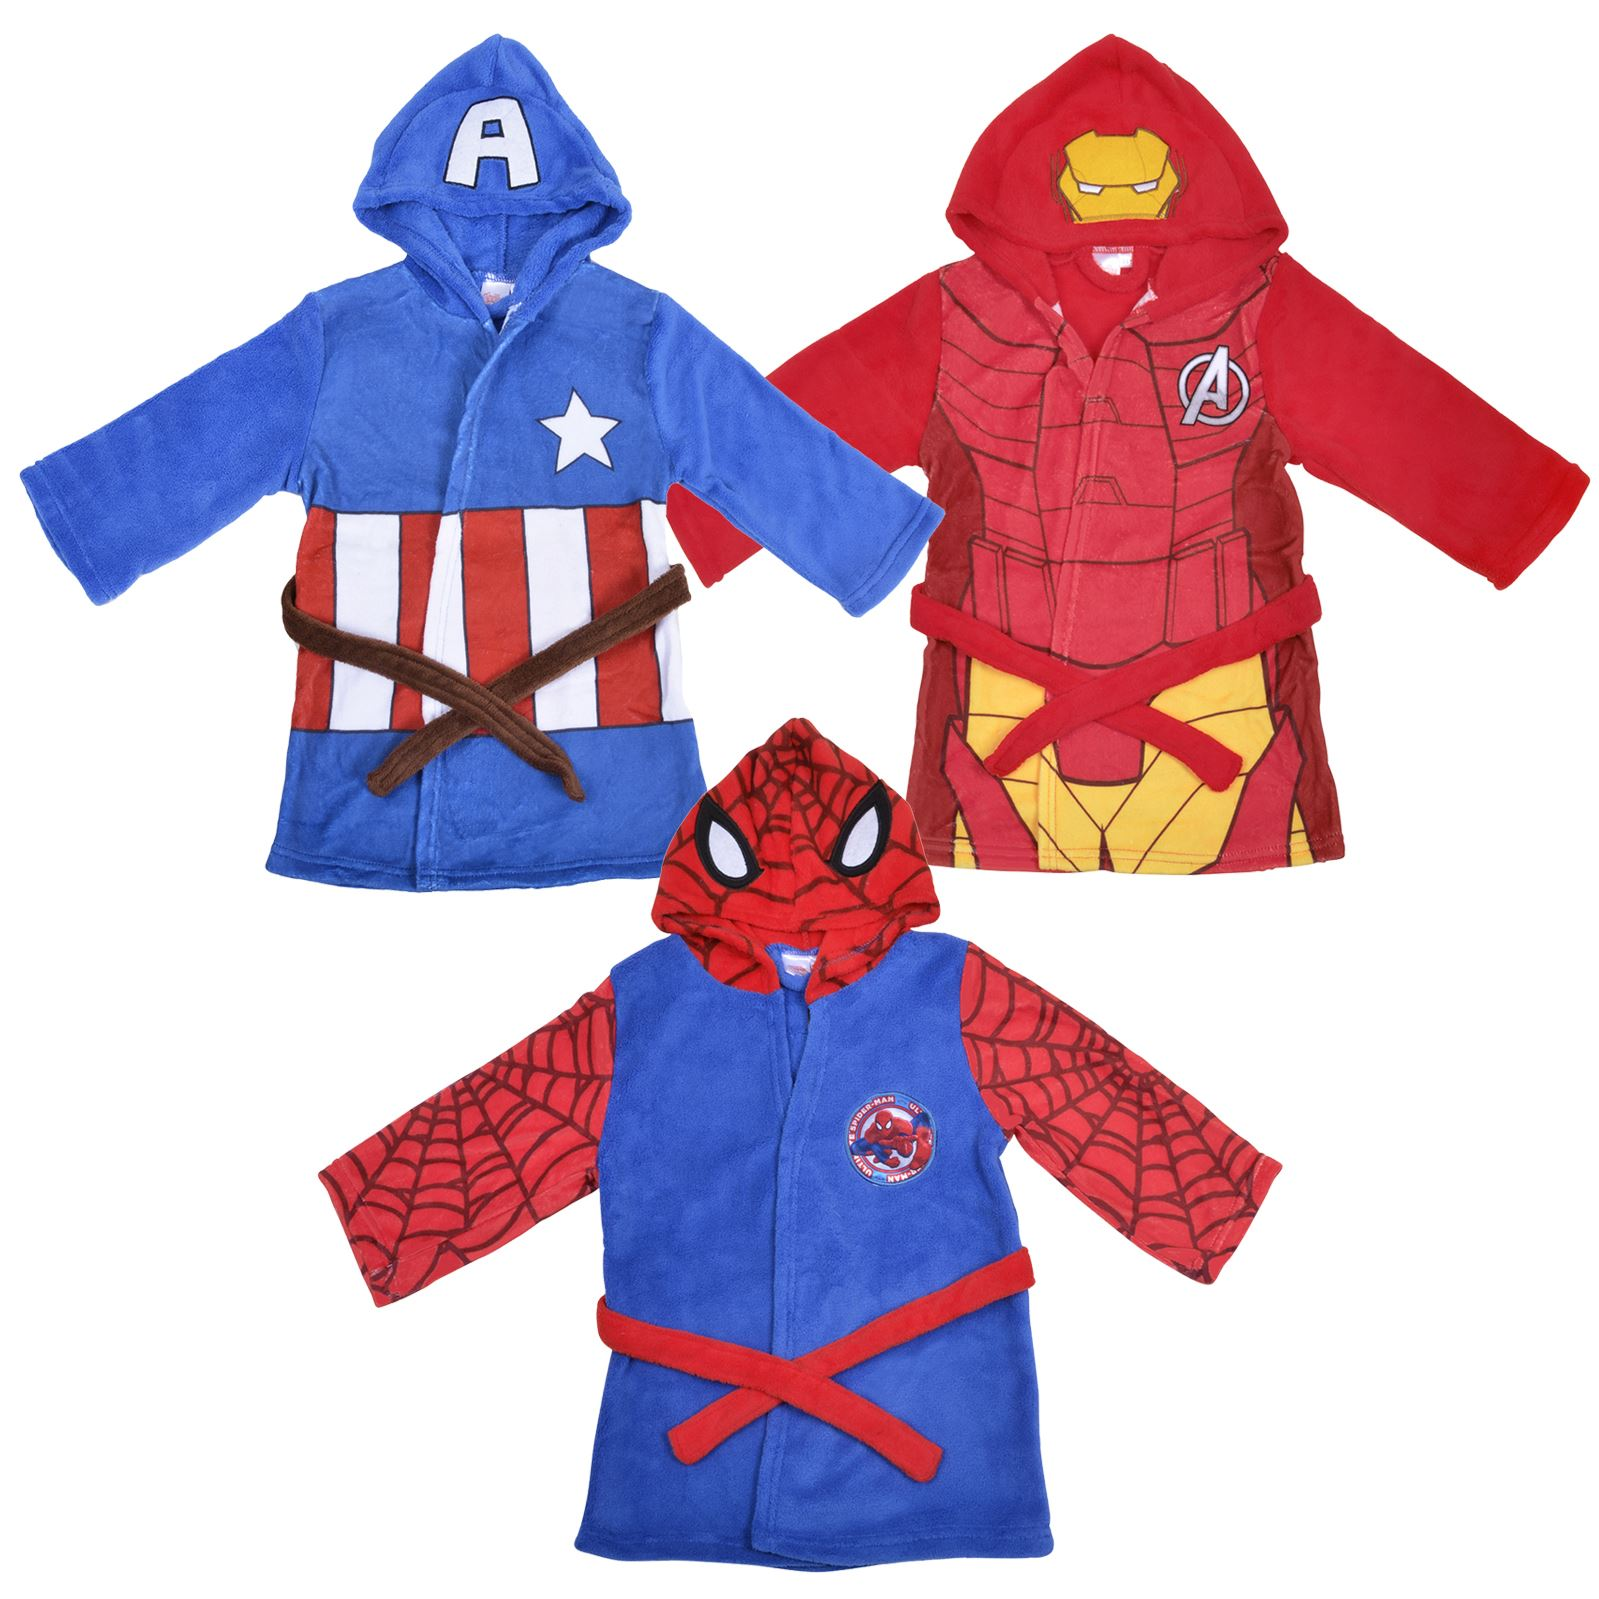 2a09b13e45 Details about Marvel Superheroes Fleece Hooded Dressing Gown Capt America  Spiderman Iron Man